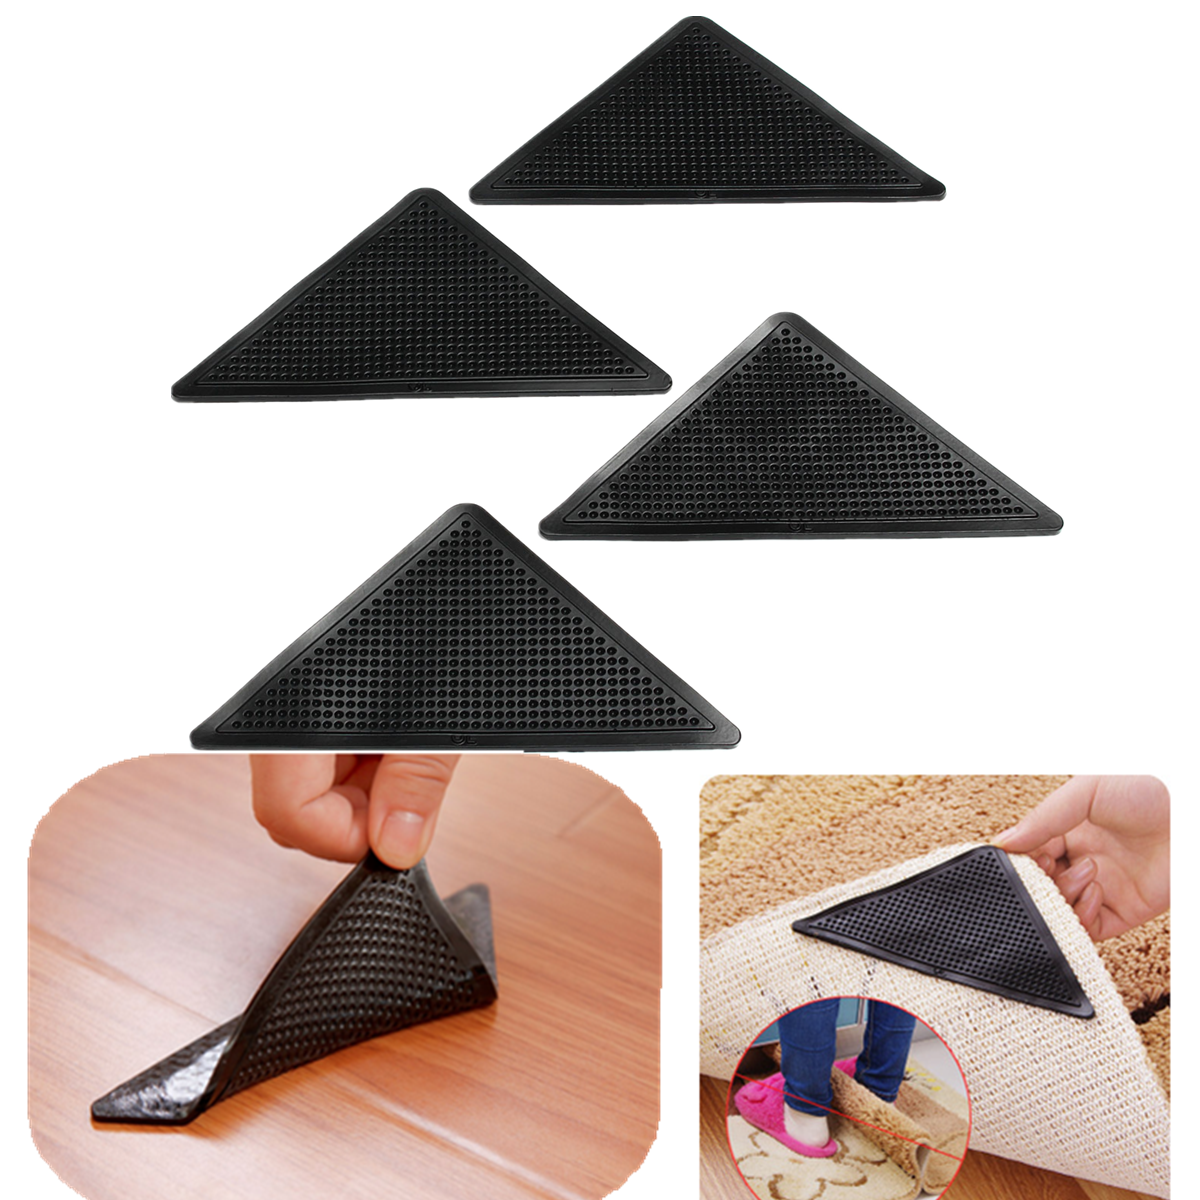 4pcs/Set Non-Skid Rug Pad Reusable Non-slip Sticker Rubber Floor Rug Carpet Mat Grippers Triangle-shaped Corners Pad Anti Skid Washable Silicone Tape Stickers